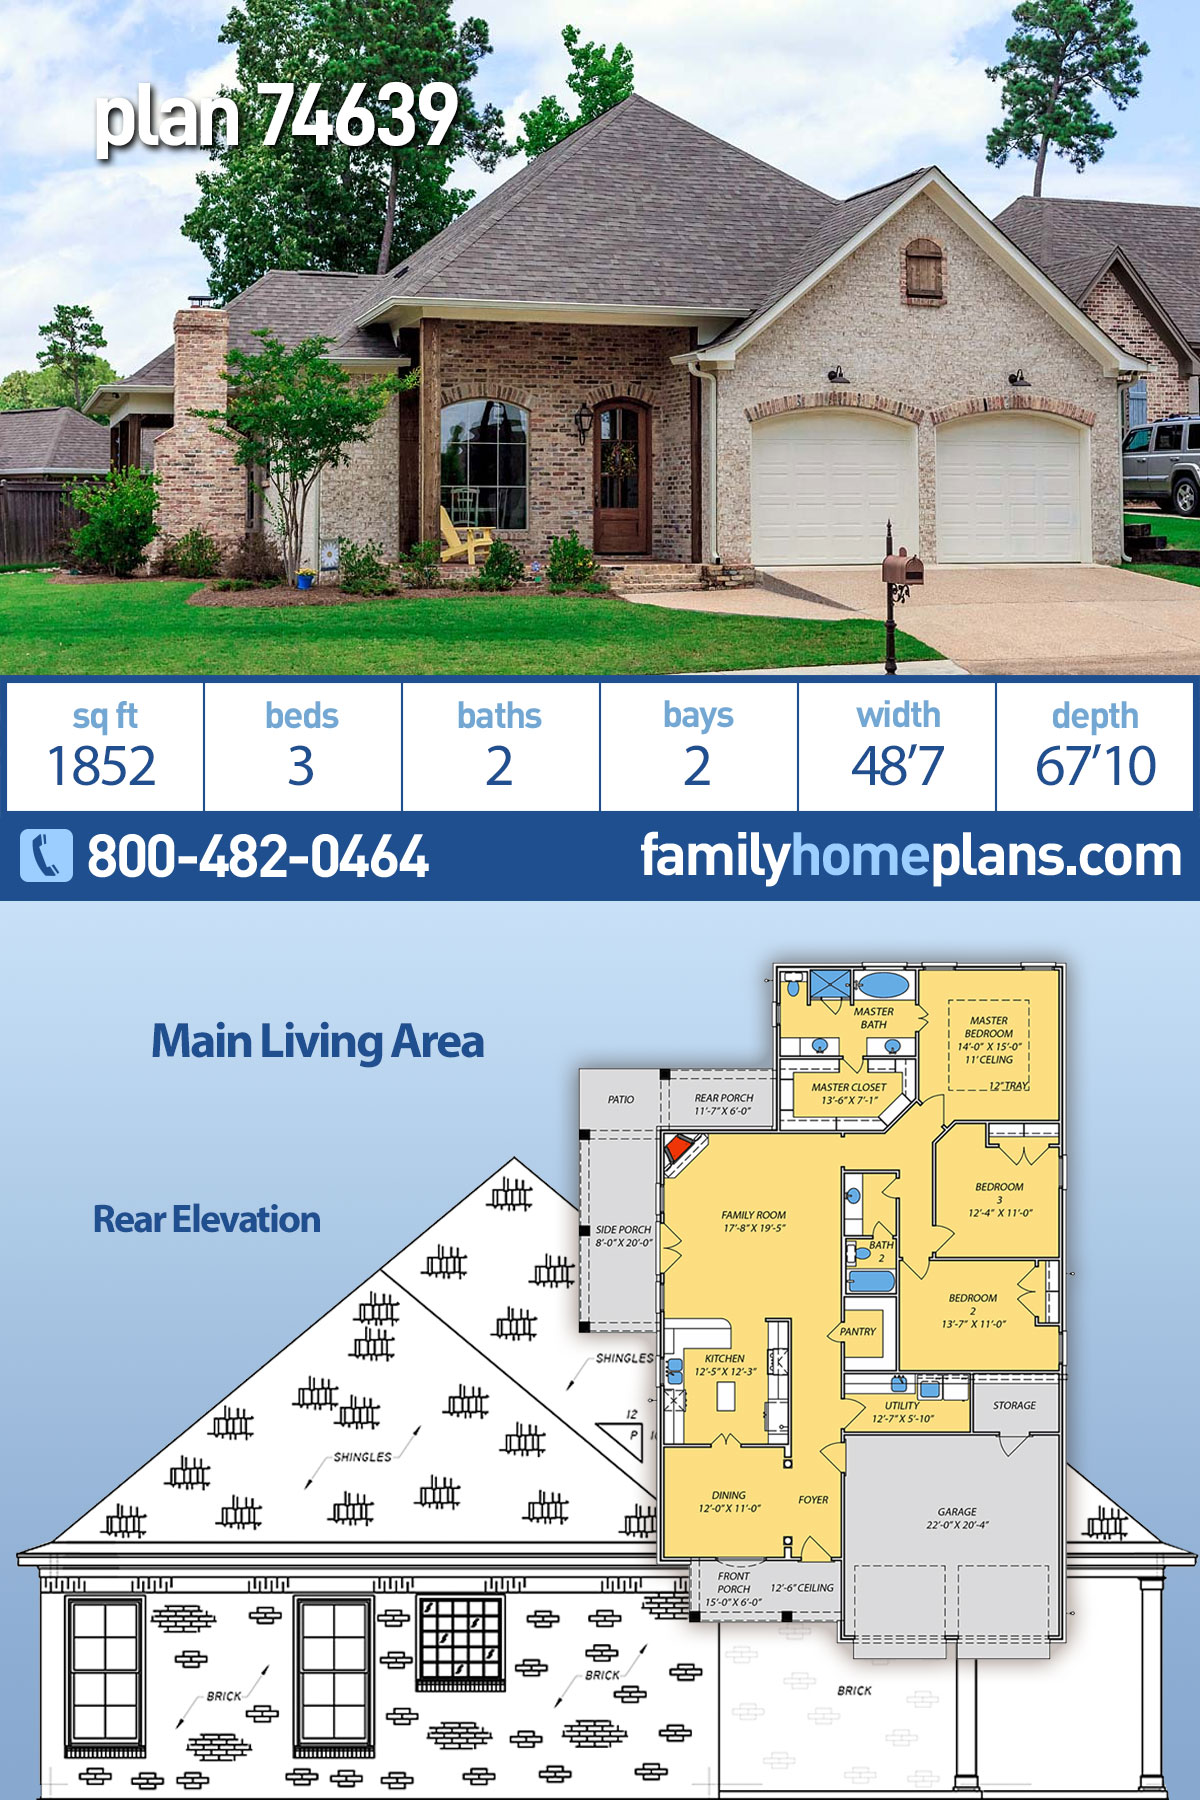 European, French Country, Traditional House Plan 74639 with 3 Beds, 2 Baths, 2 Car Garage